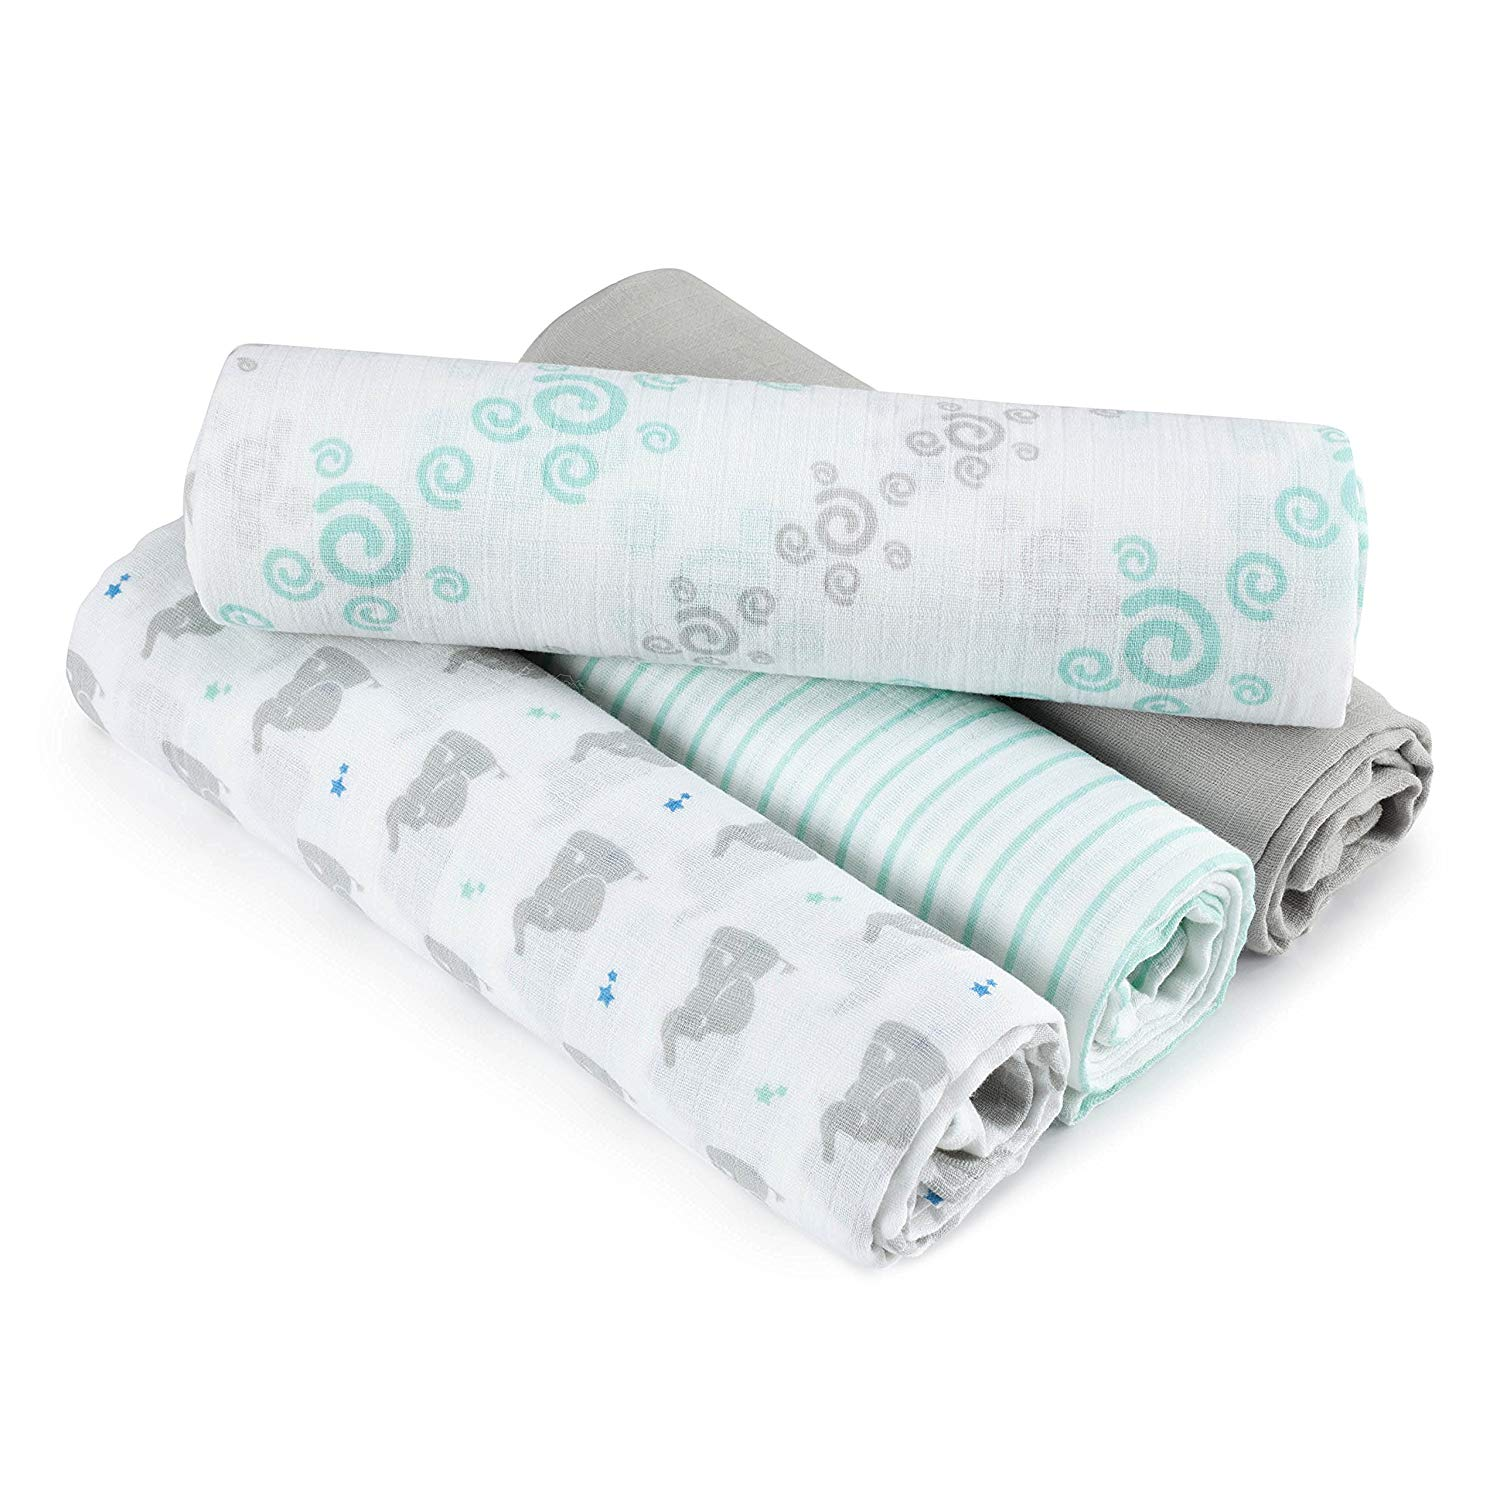 Gauze fabric 100% organic cotton muslin wrap muslin baby swaddle blanket